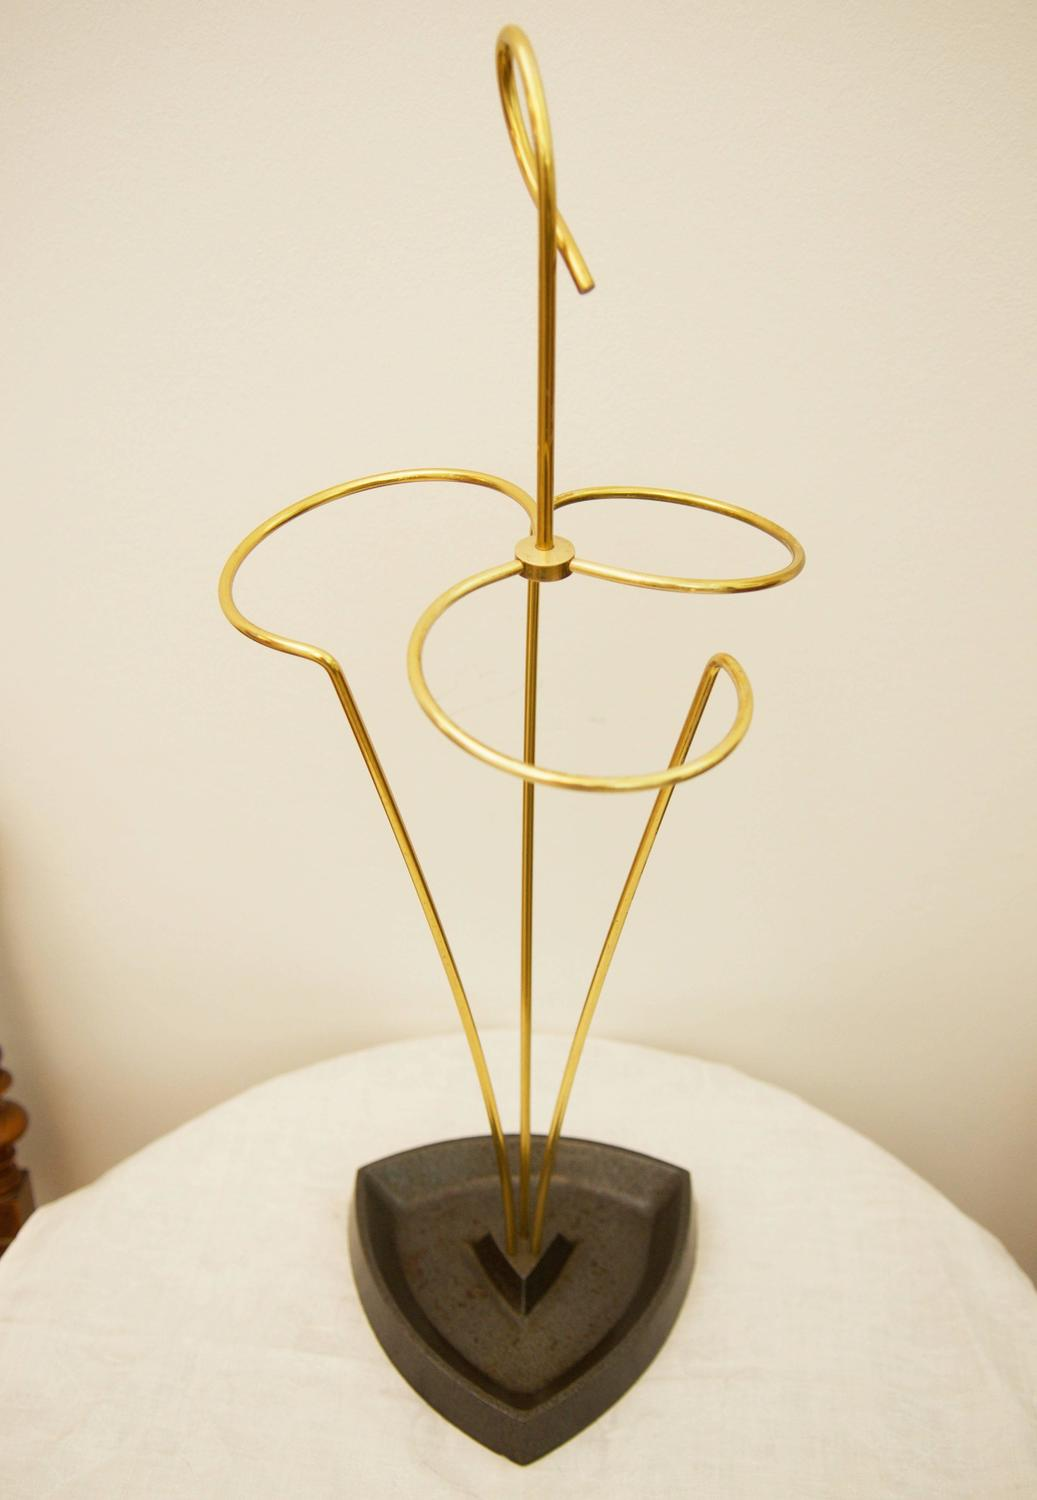 umbrella stand vienna from 1950s at 1stdibs. Black Bedroom Furniture Sets. Home Design Ideas